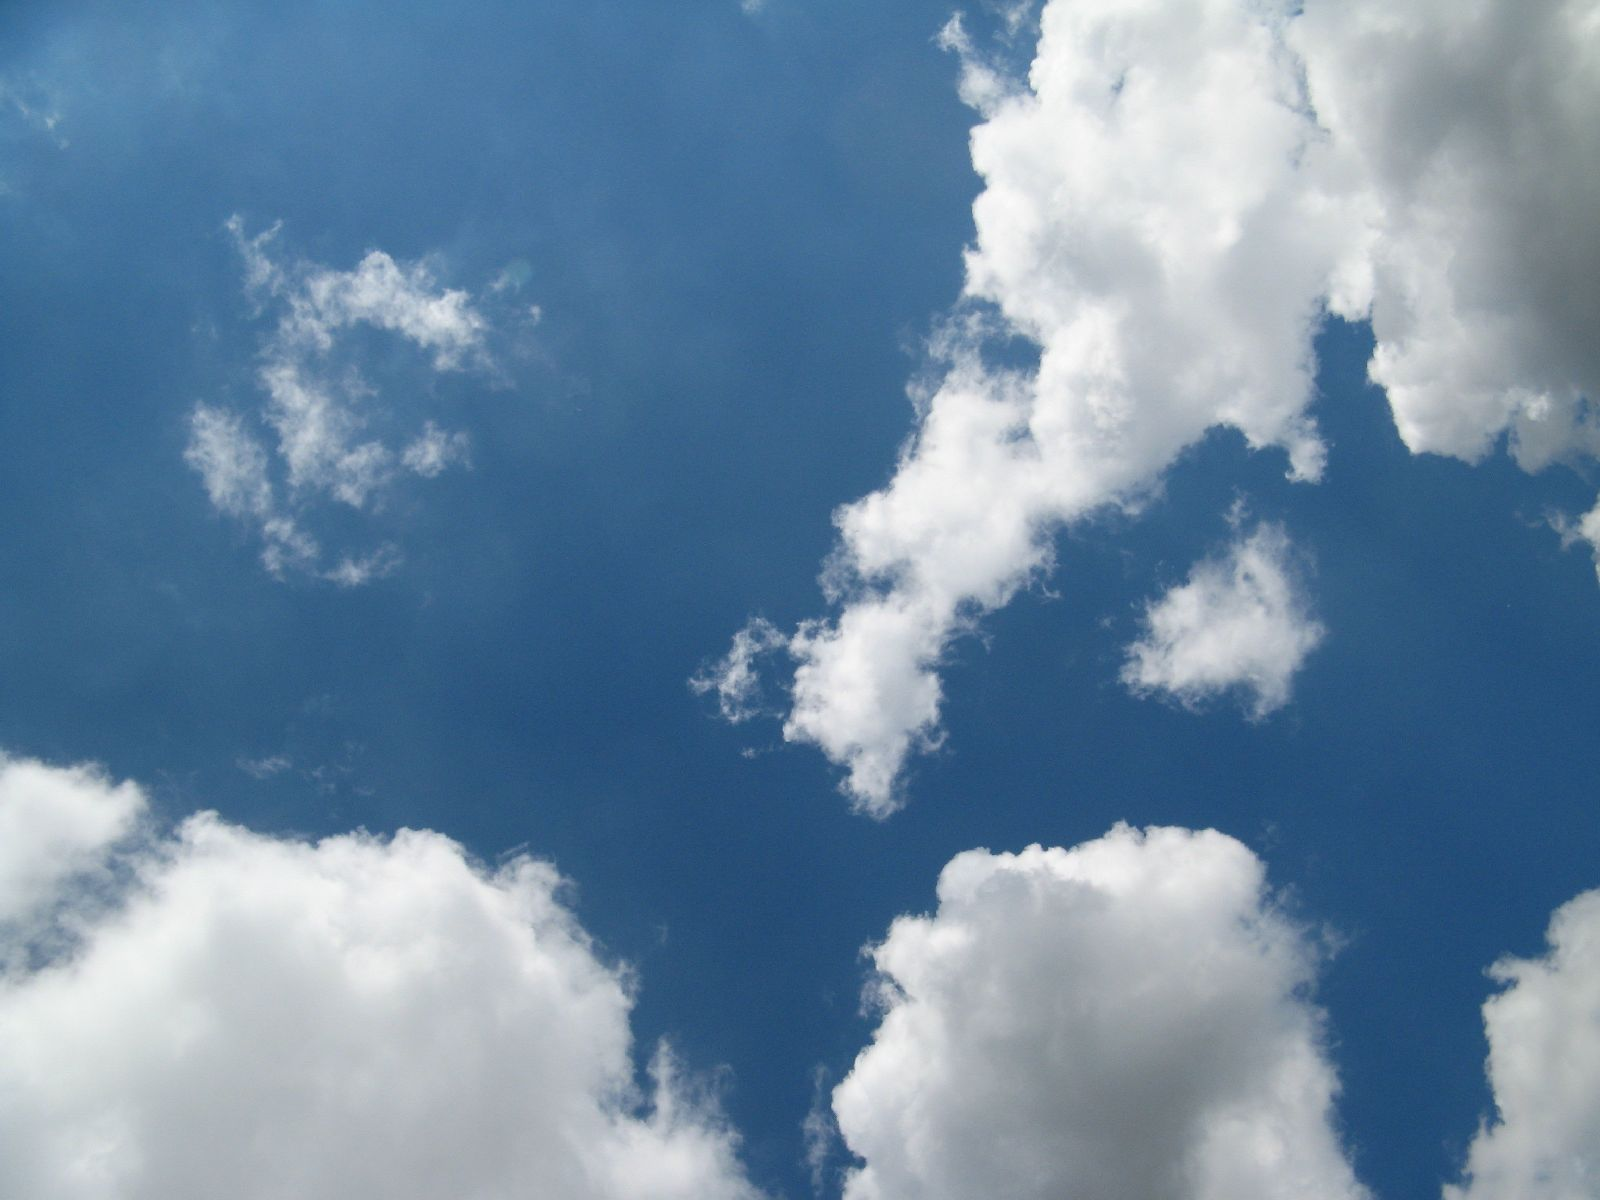 Sky_Clouds_Photo_Texture_B_01000